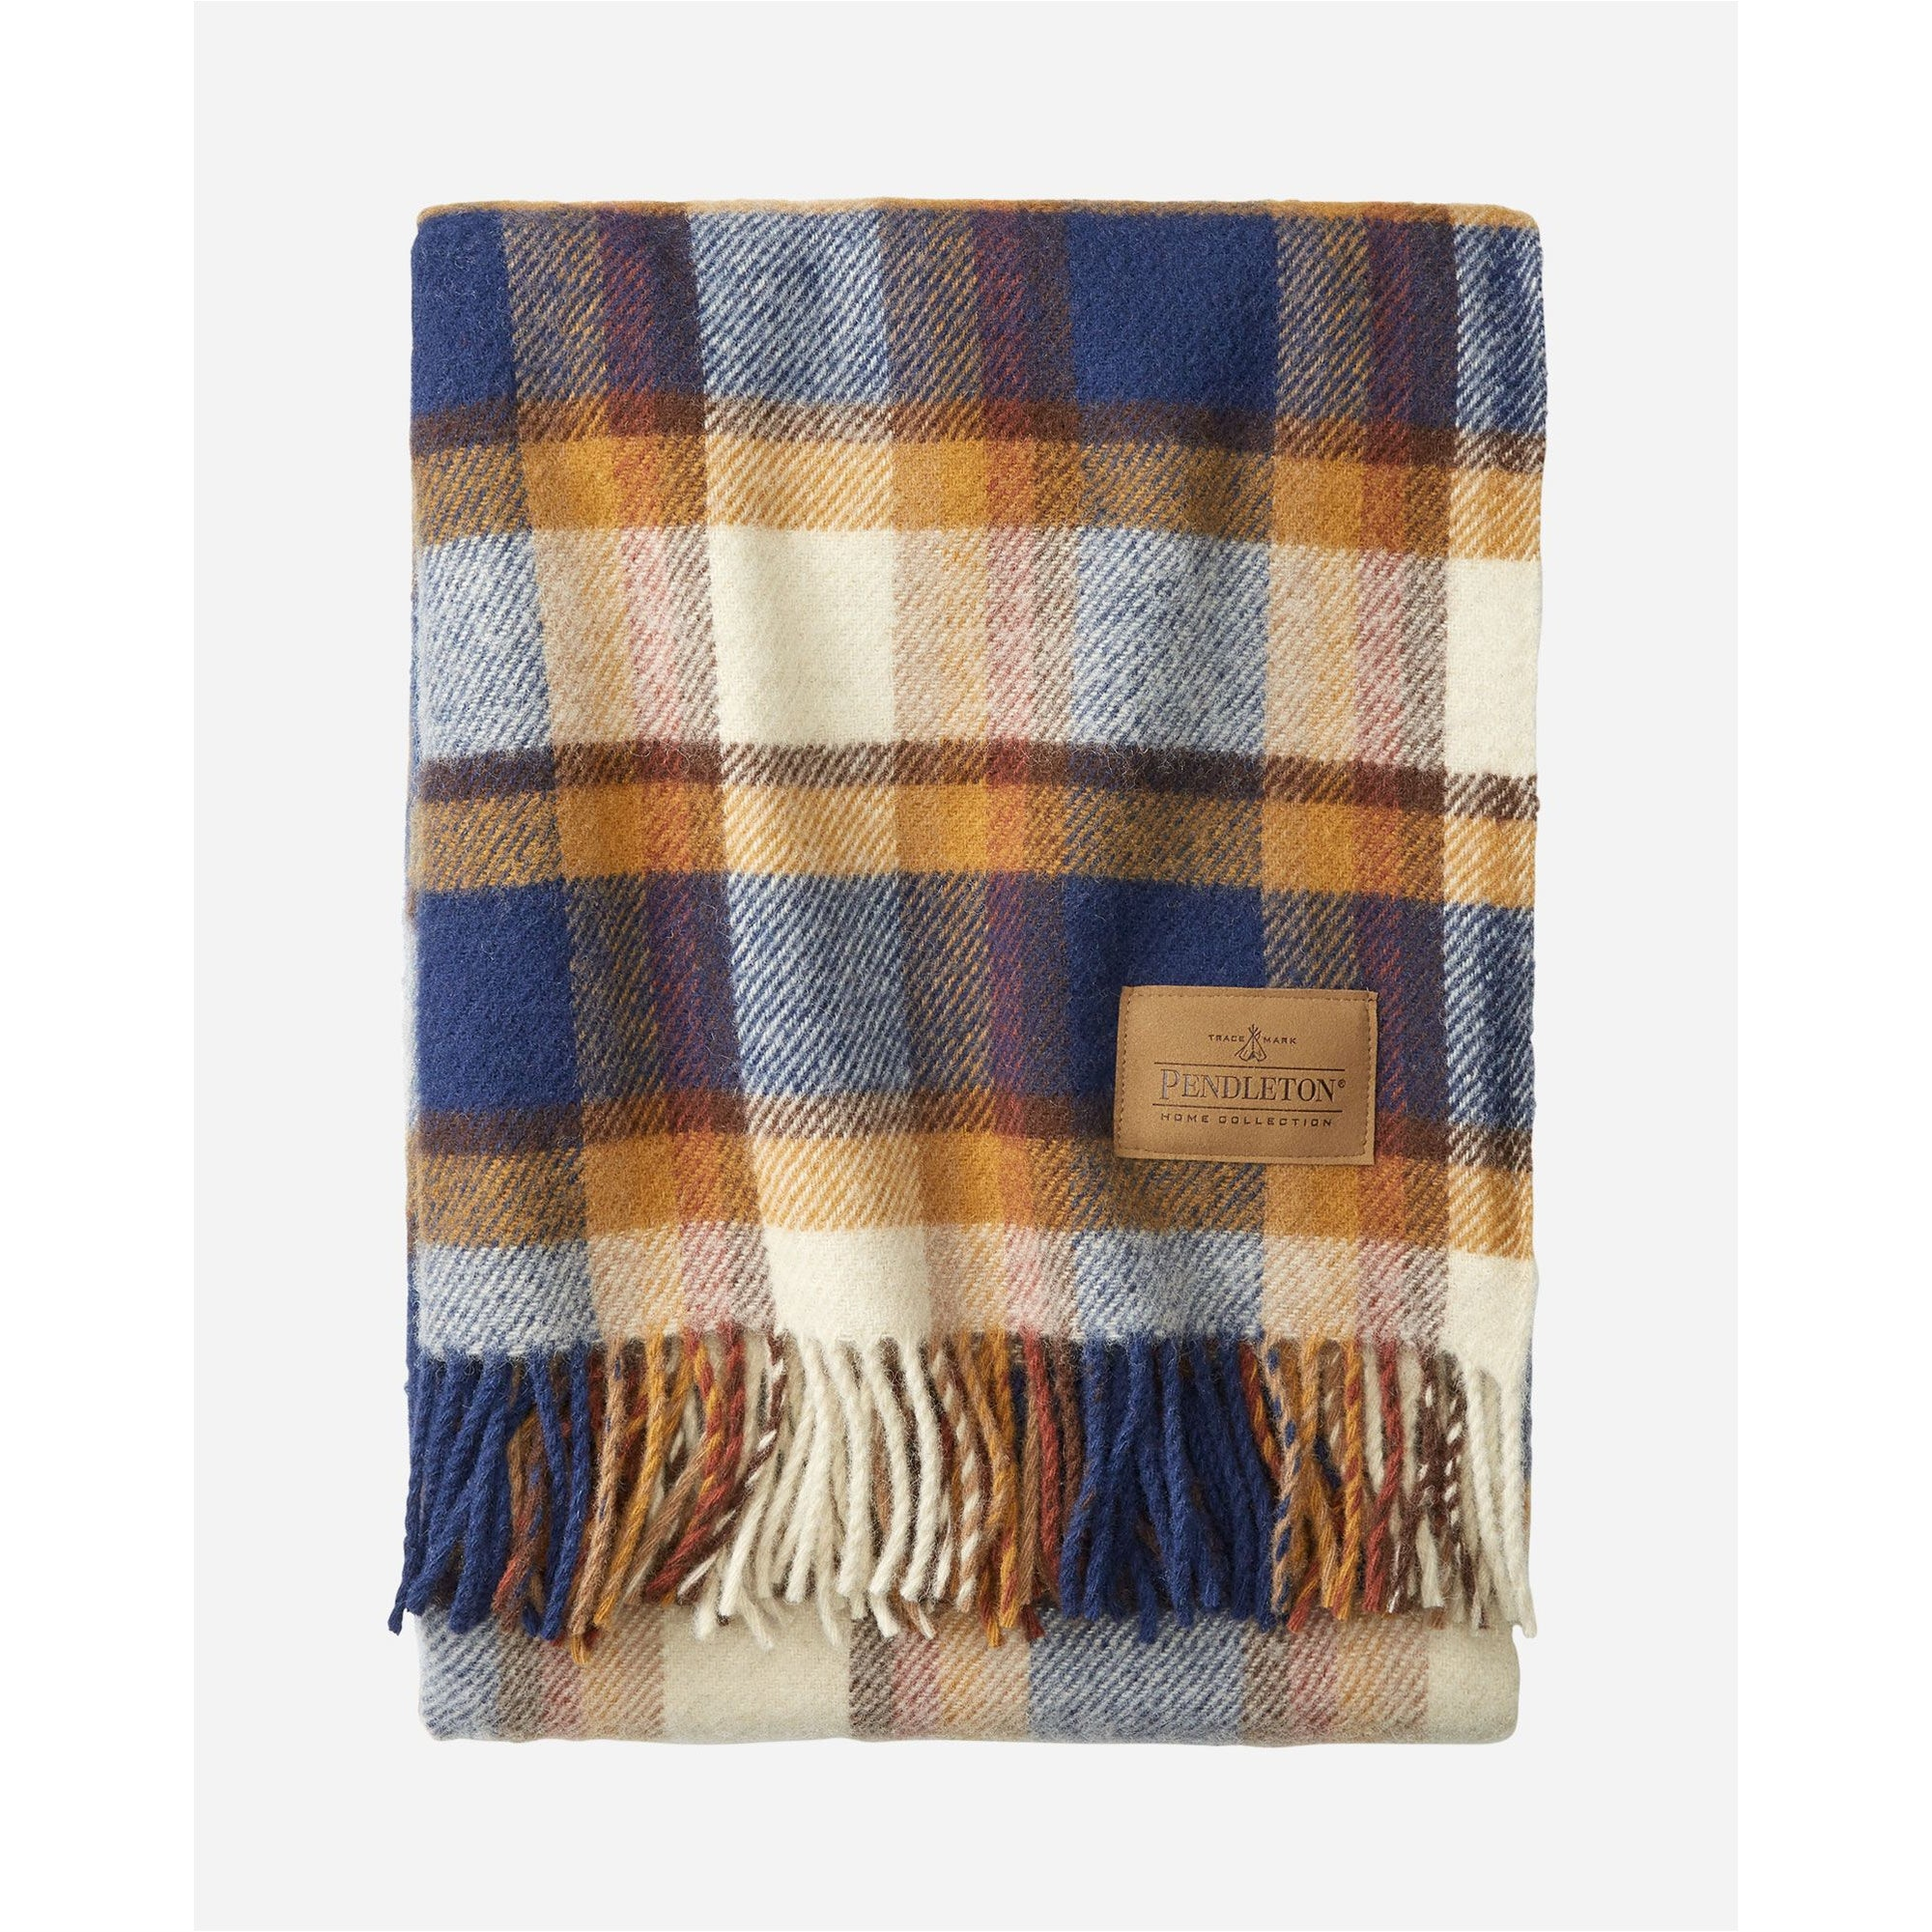 Steens Mountain Plaid Throw with Leather Carrier | Pendleton